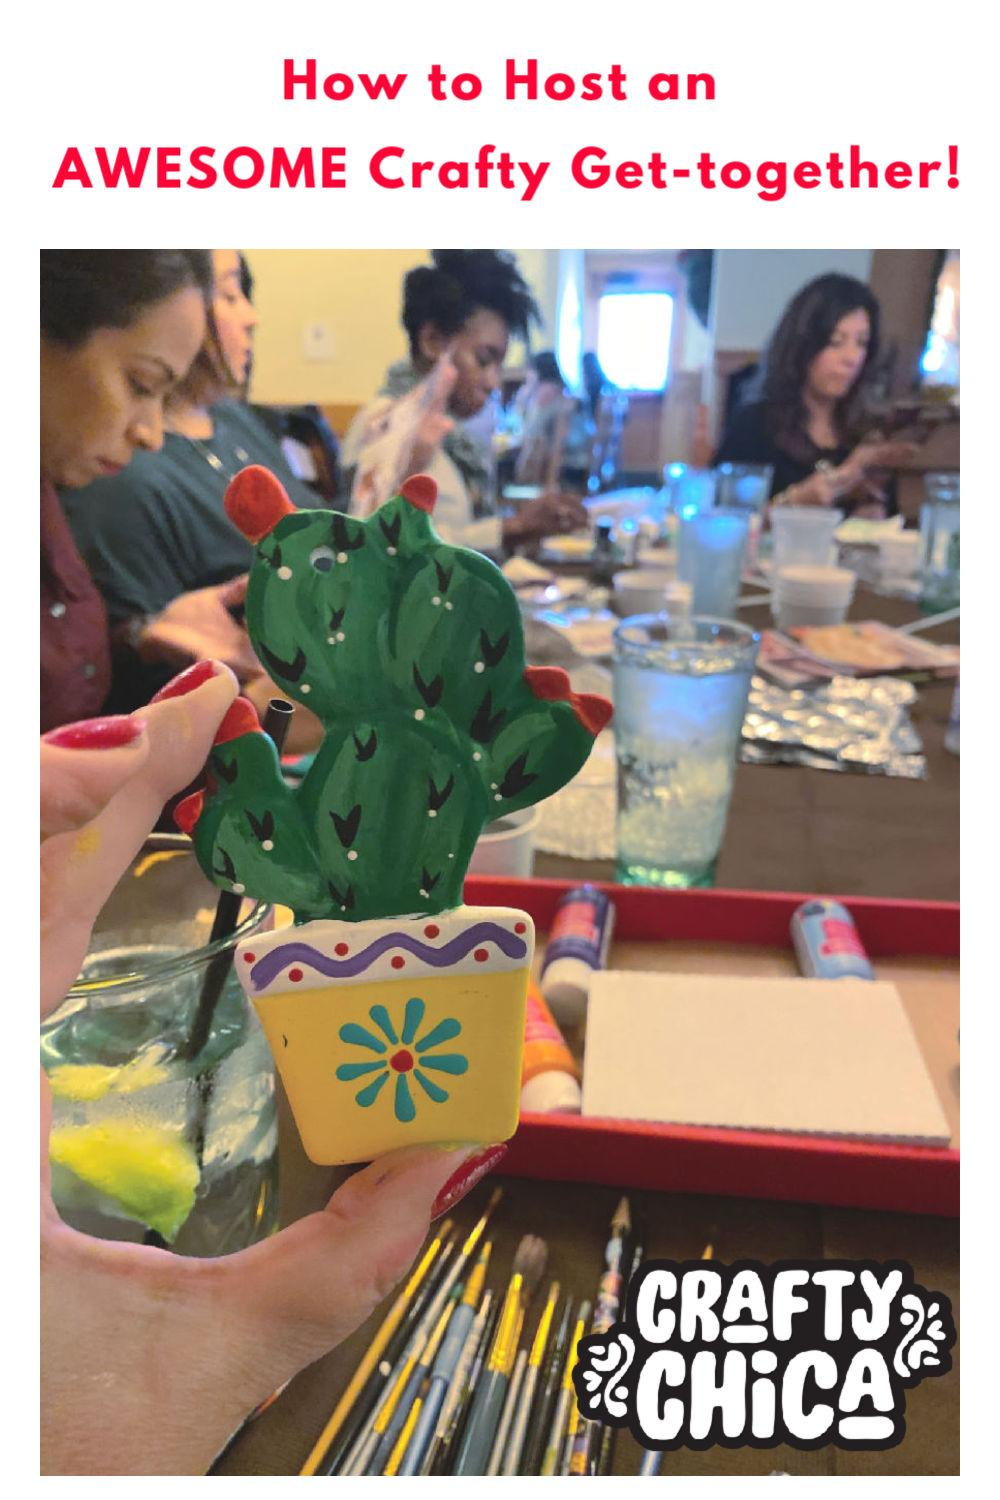 How to host a crafty get-together